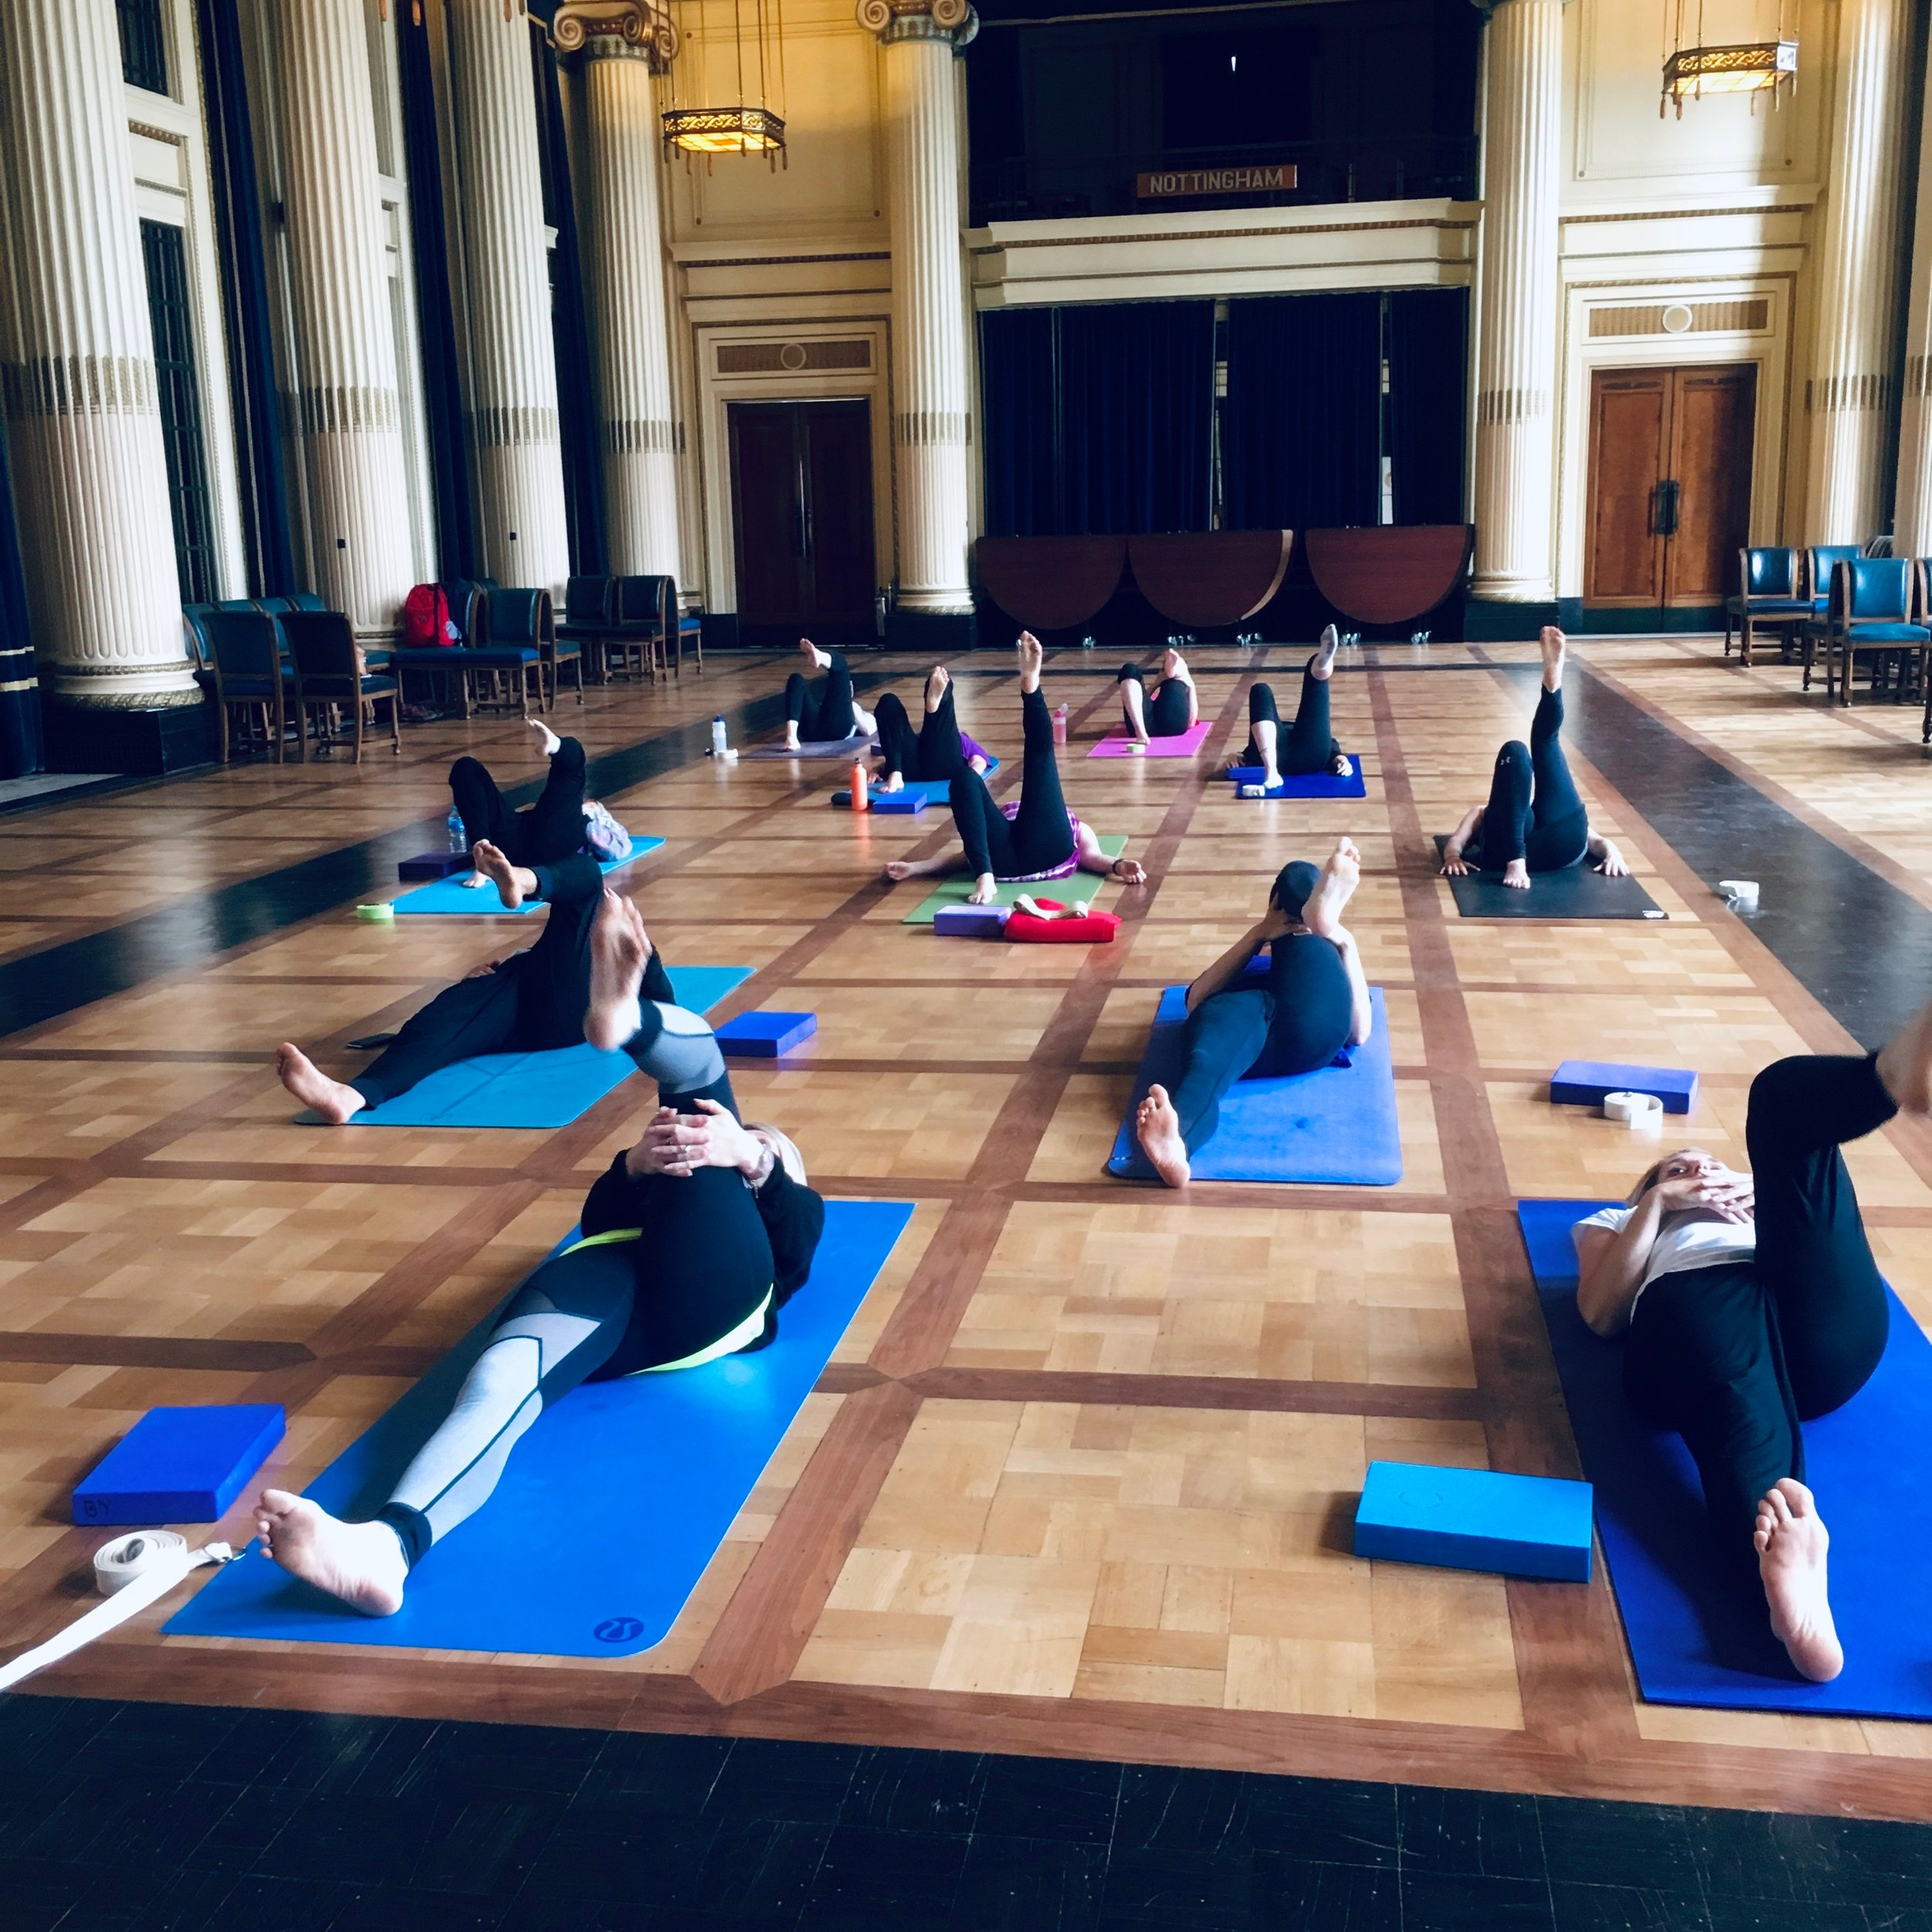 Yoga for AlNottingham City Council House - Yoga for Alzheimers Research